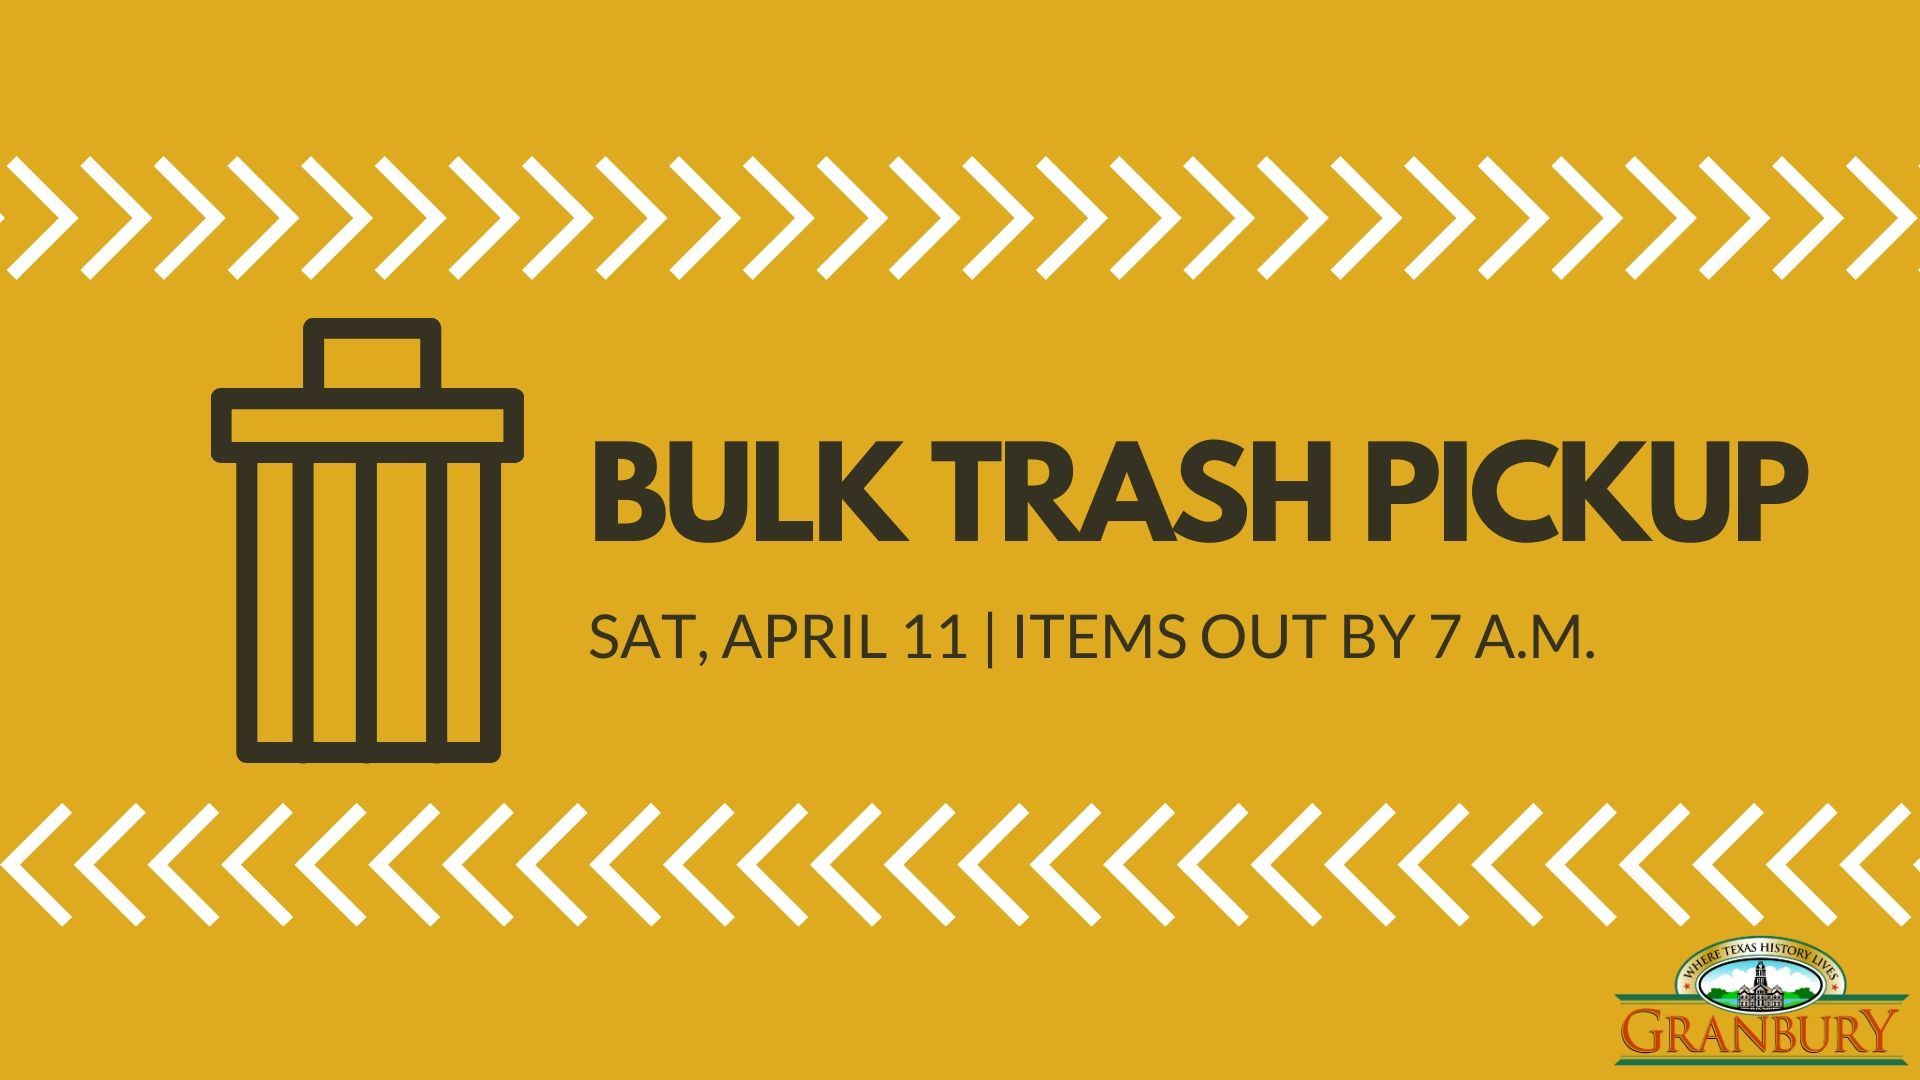 Bulk trash pickup is Saturday, Aprill 11. Iteams out by 7am.